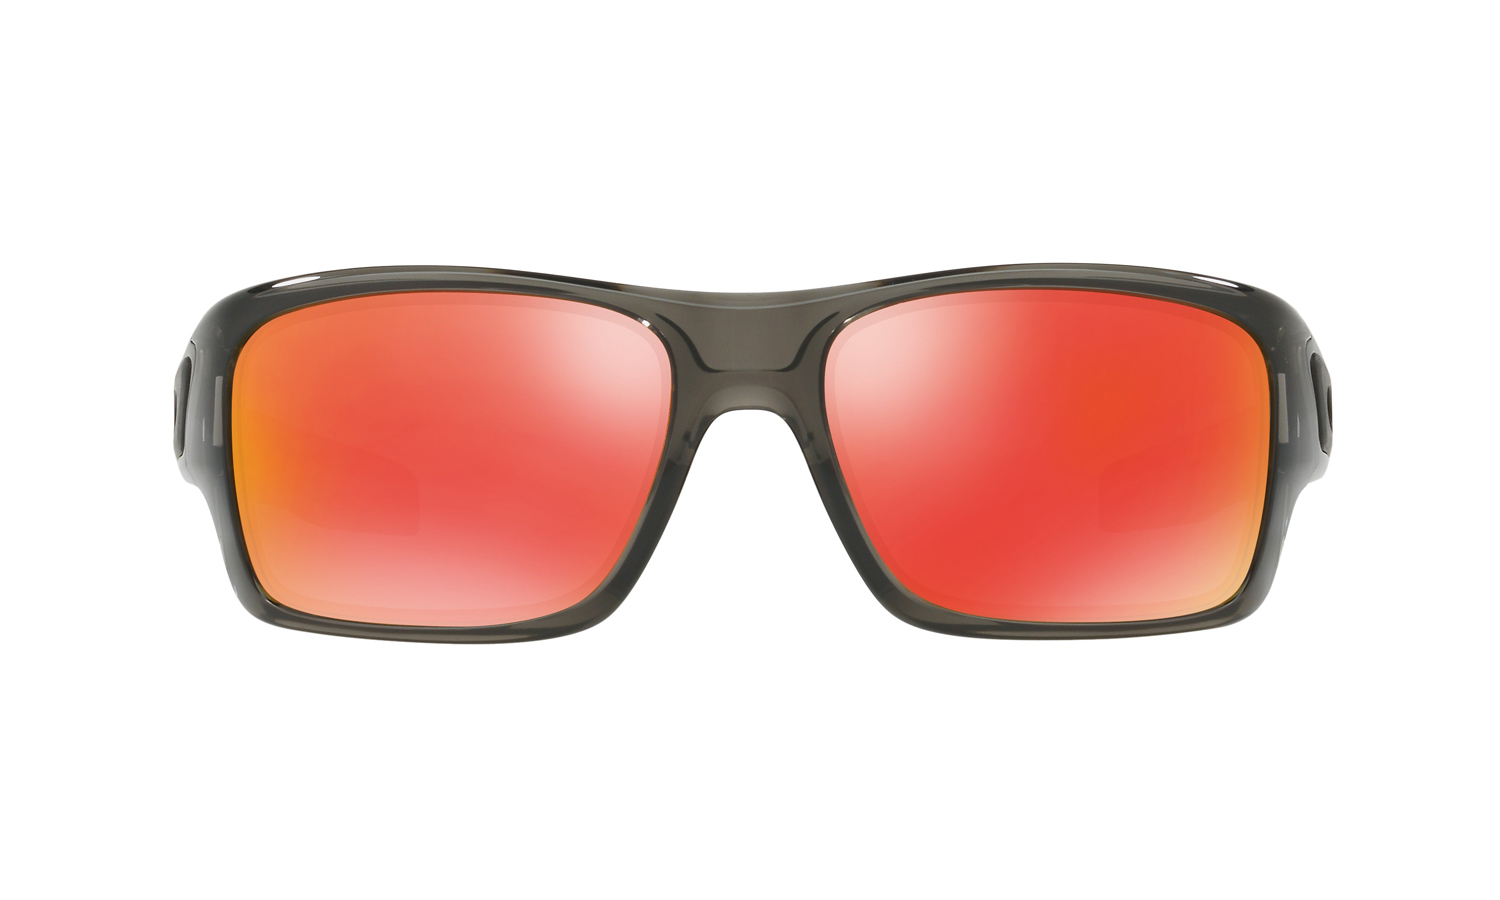 af65fcd2da Oakley Turbine XS Ruby Iridium Grey Smoke Youth Sunglasses OJ9003-0457